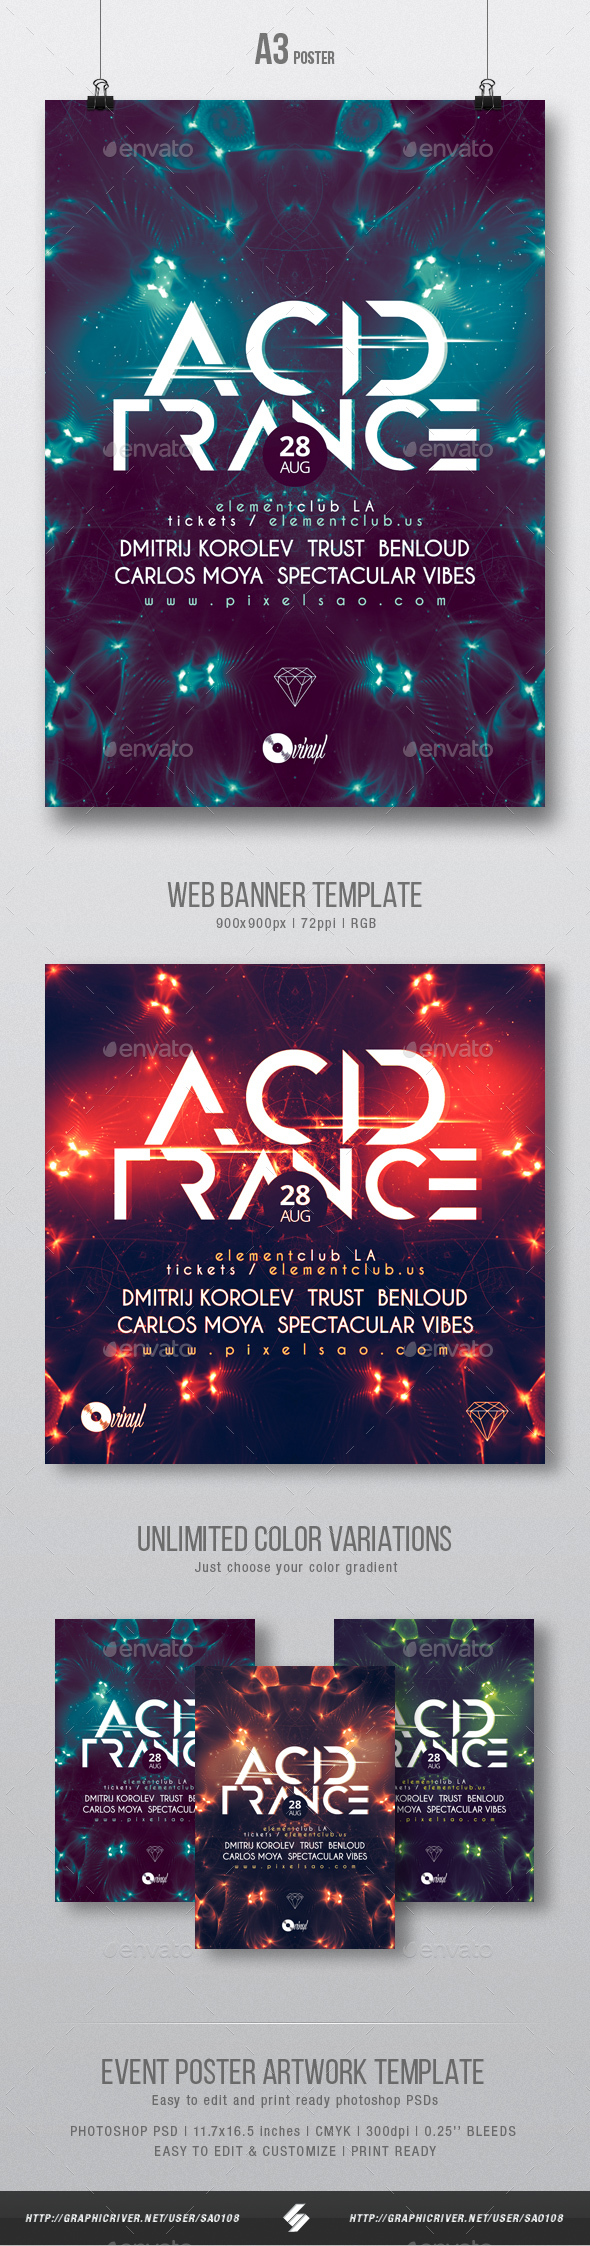 Acid Trance - Club Party Flyer / Poster Template A3 - Clubs & Parties Events